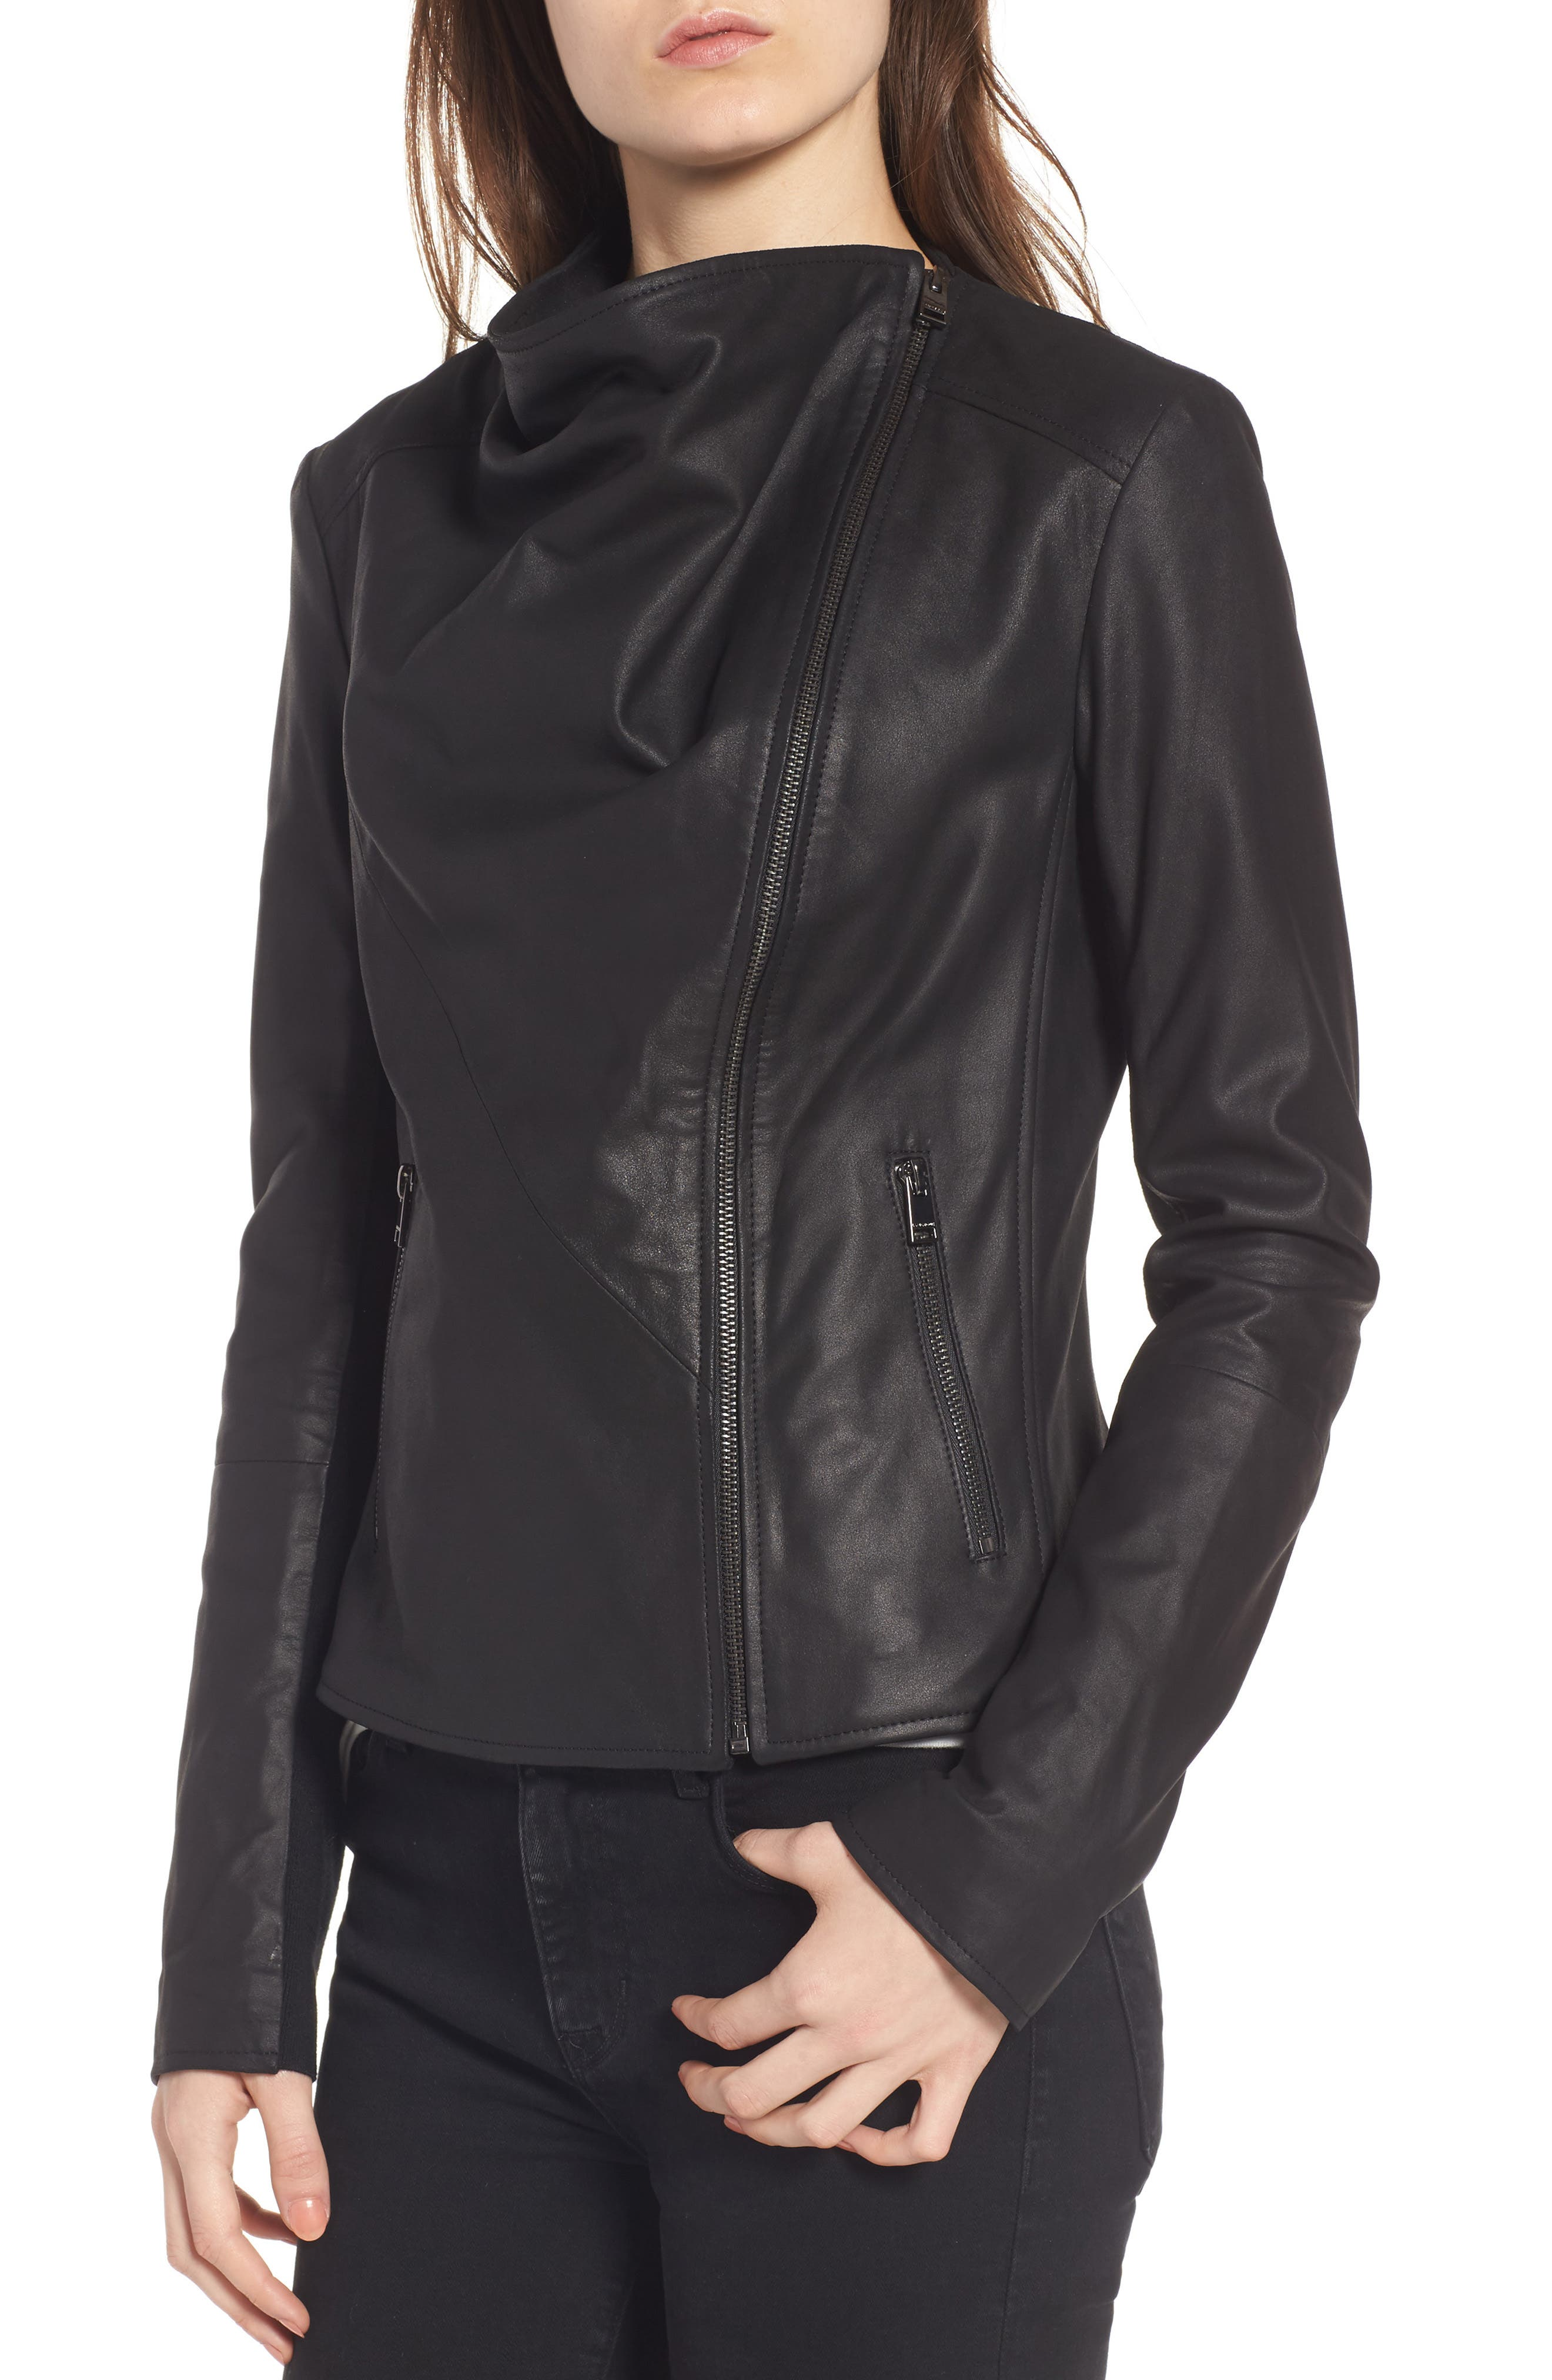 Cascade Leather Jacket,                             Alternate thumbnail 4, color,                             001